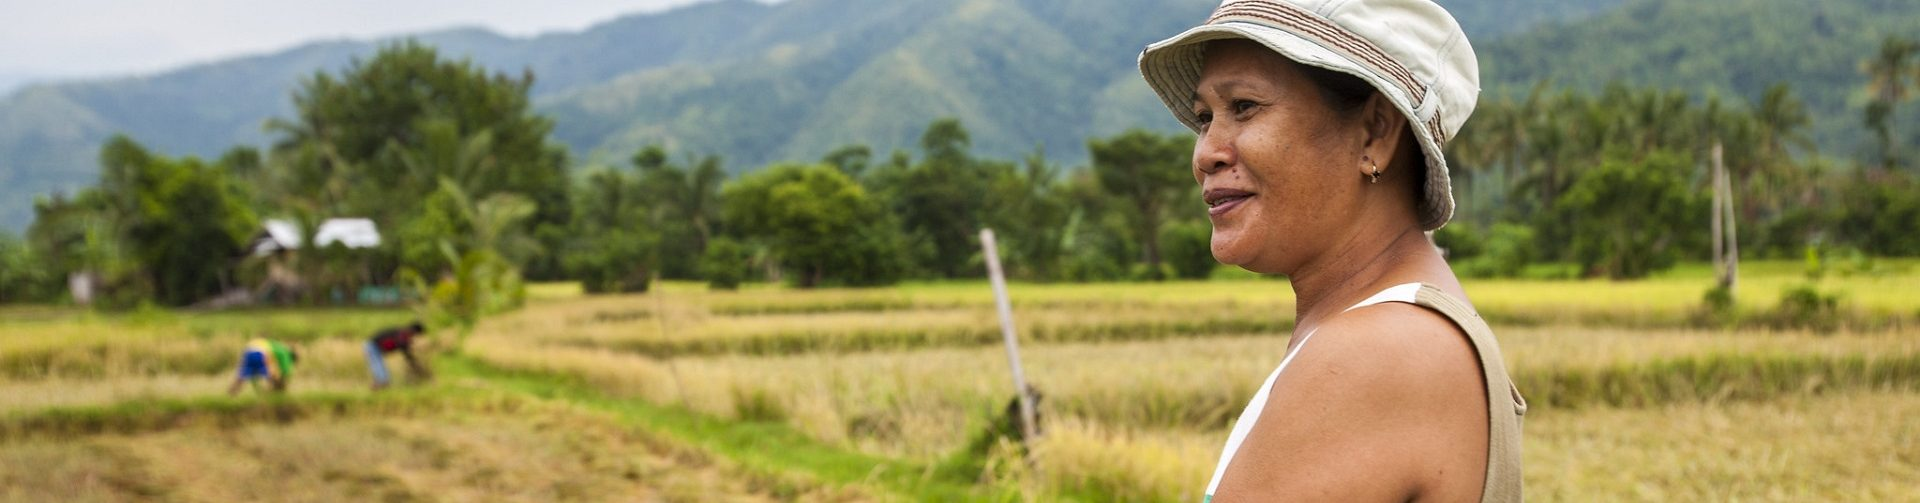 Guiding policies to promote agricultural growth, food security, and adaptation to climate change in the Philippines